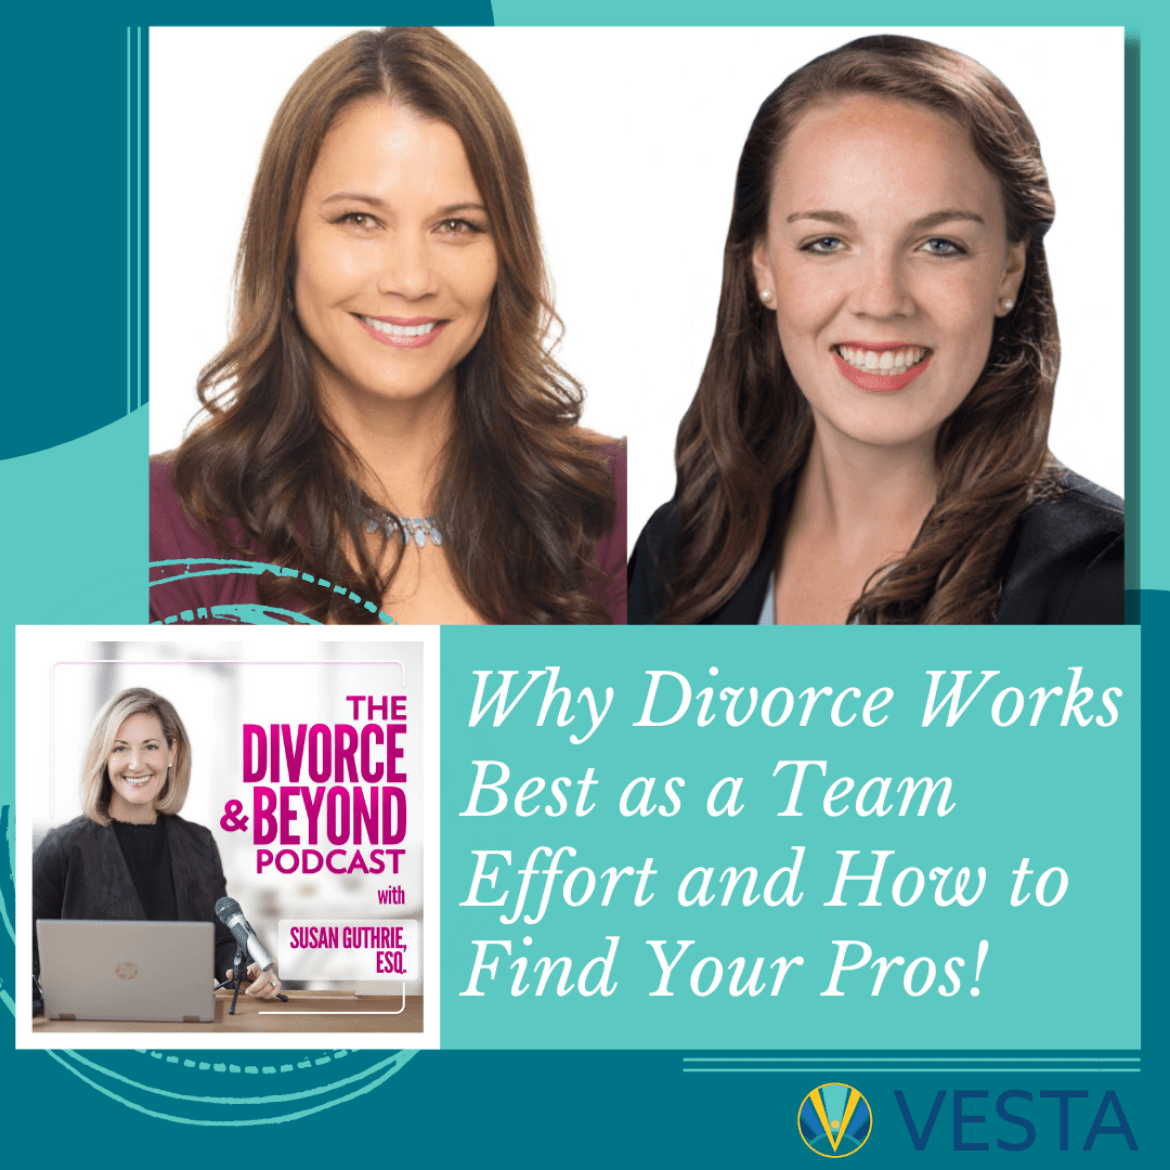 Why Divorce Works Best as a Team Effort and How to Find Your Pros!